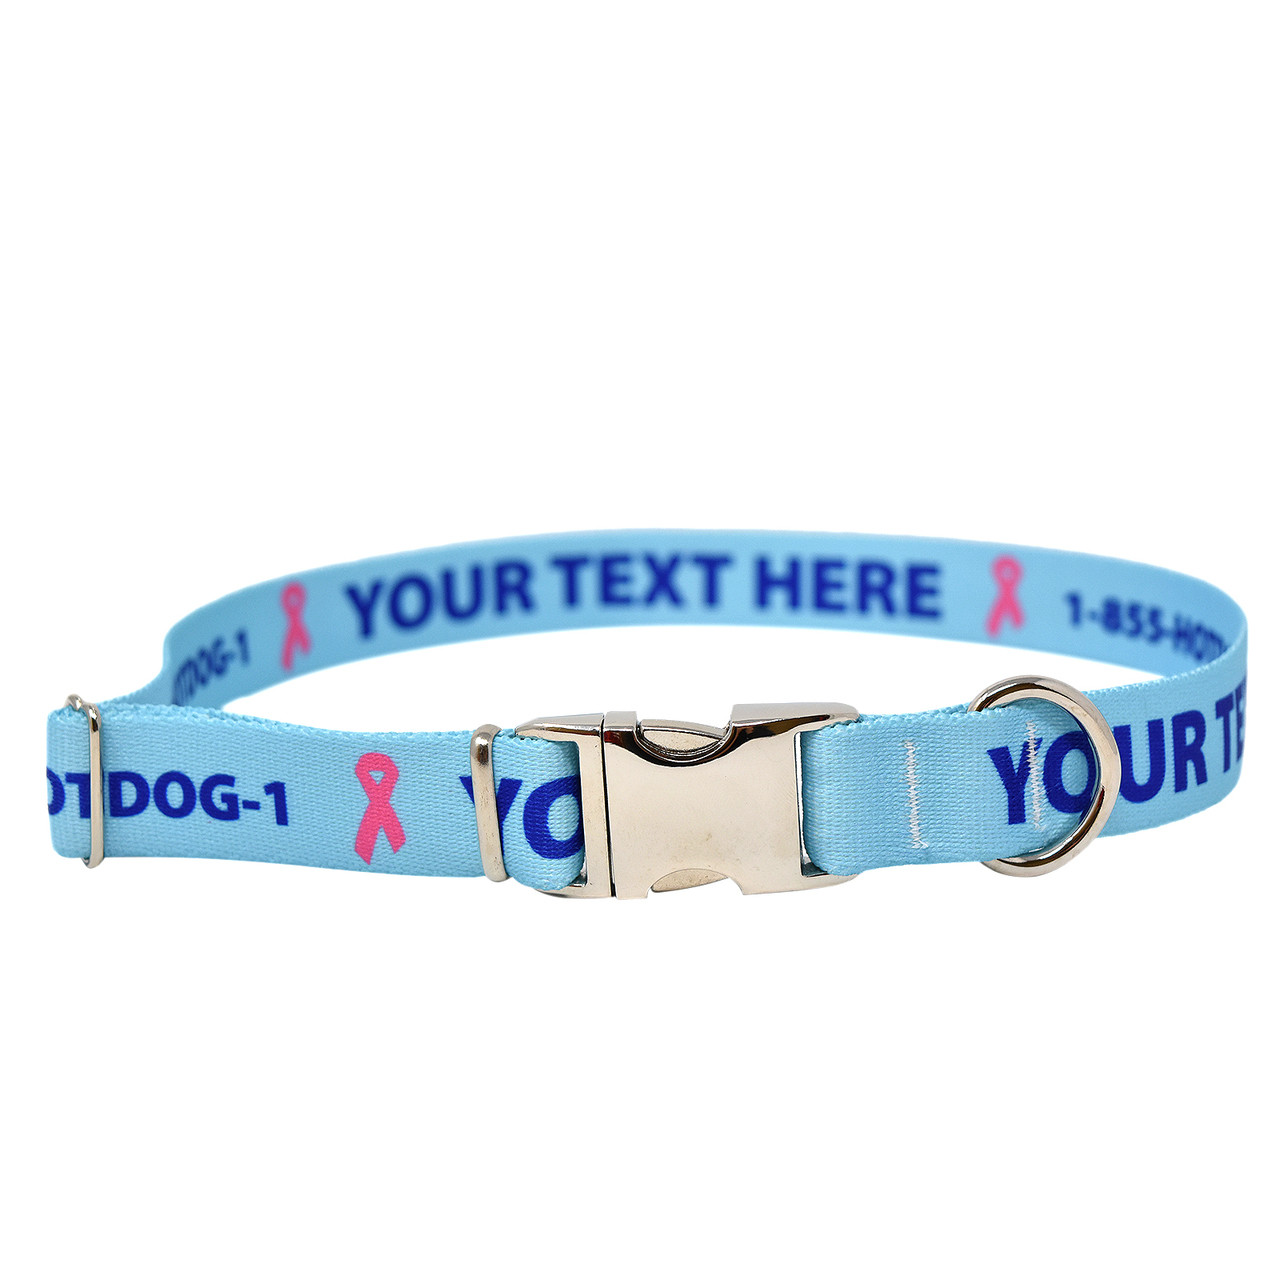 Personalized Premium Dog Collar with Metal Clasp Available in 20 Colors Multiple Sizes Made in The USA